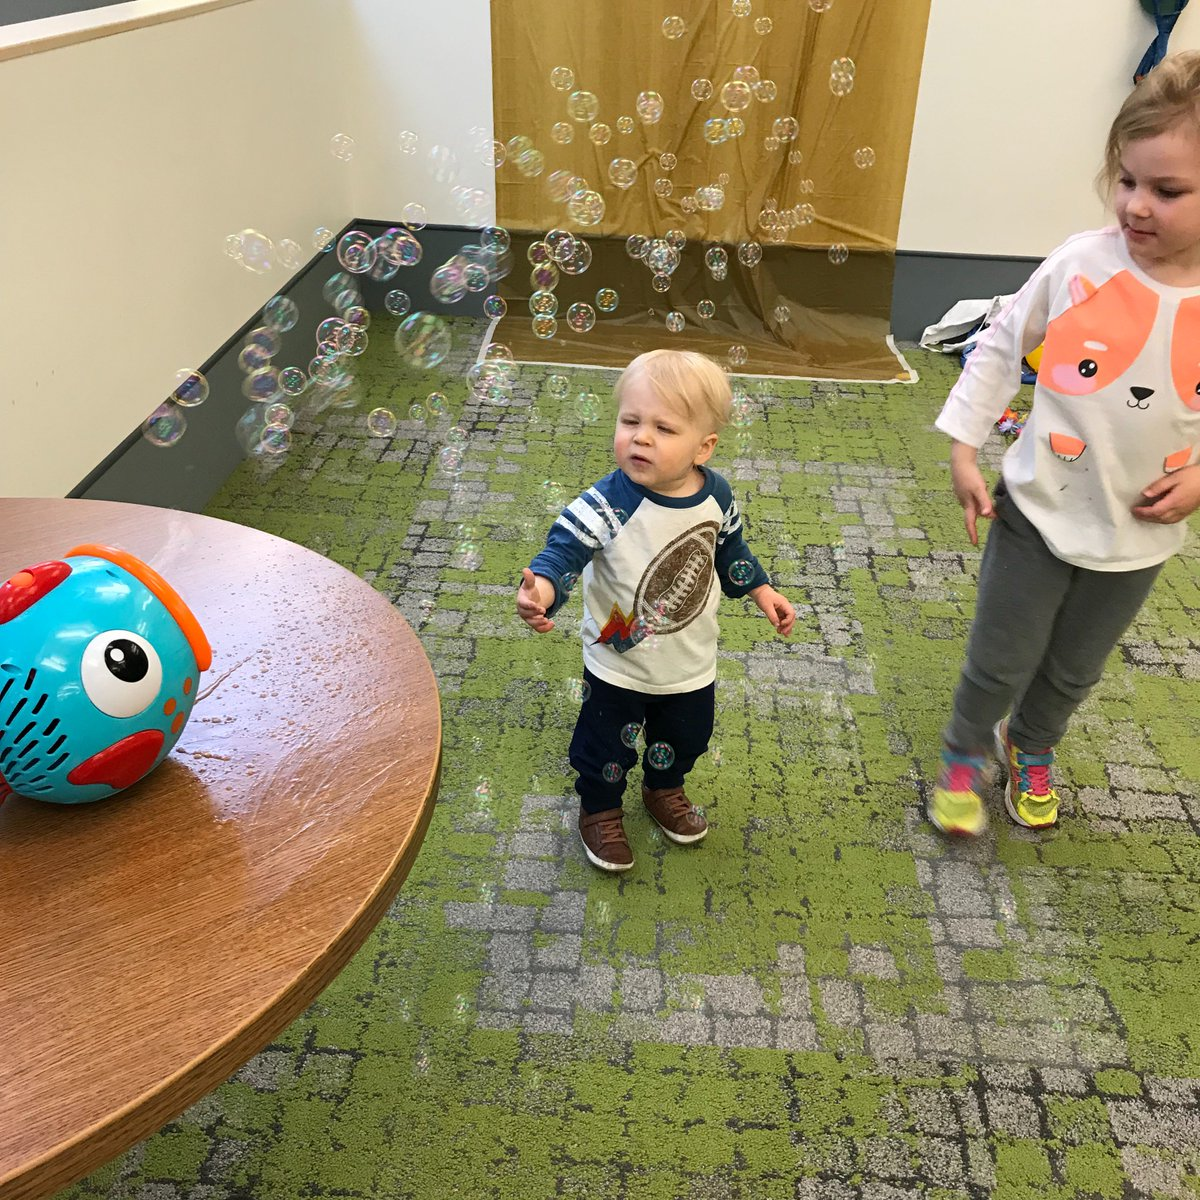 test Twitter Media - The children at our Sprouted Child Care & Early Education Center in Wilmette enjoying Family Fun Day during the Week of the Young Child.  #EarlyEducation #EarlyYearsEducation #KidsPlayroom #FamilyFun #LifeWithoutLimits #PreschoolPlay #PlayIsLearning https://t.co/1bsLL9Ca3A